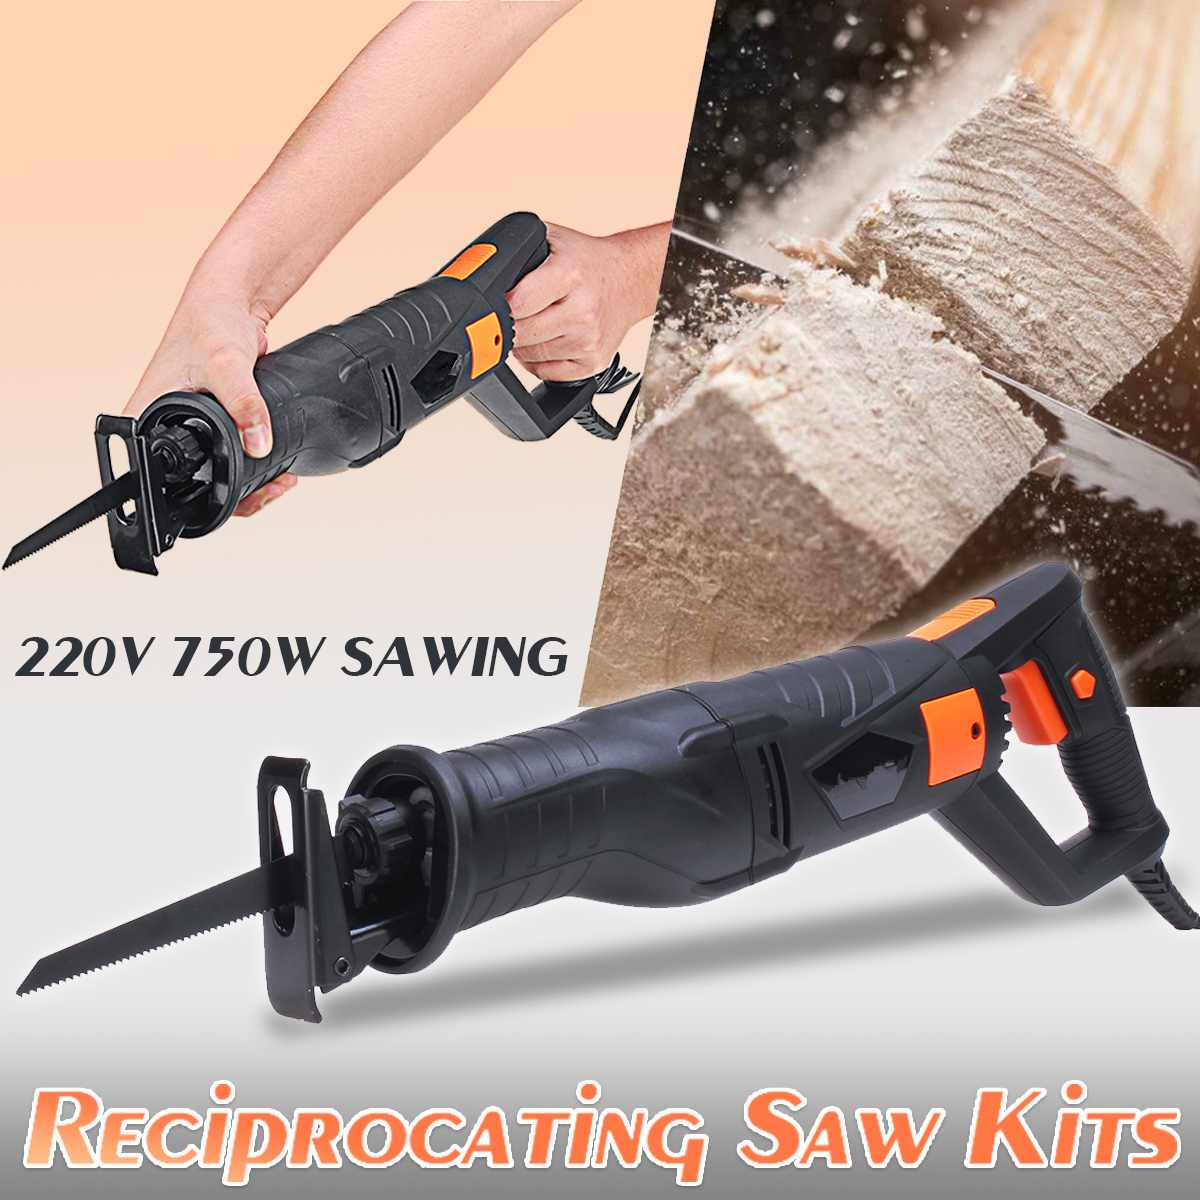 Electric Saw Reciprocating Saw for Wood Metal Plastic Pipe Cutting Power Saw Tool with Saw Blades Woodworking Cutter Power Tools